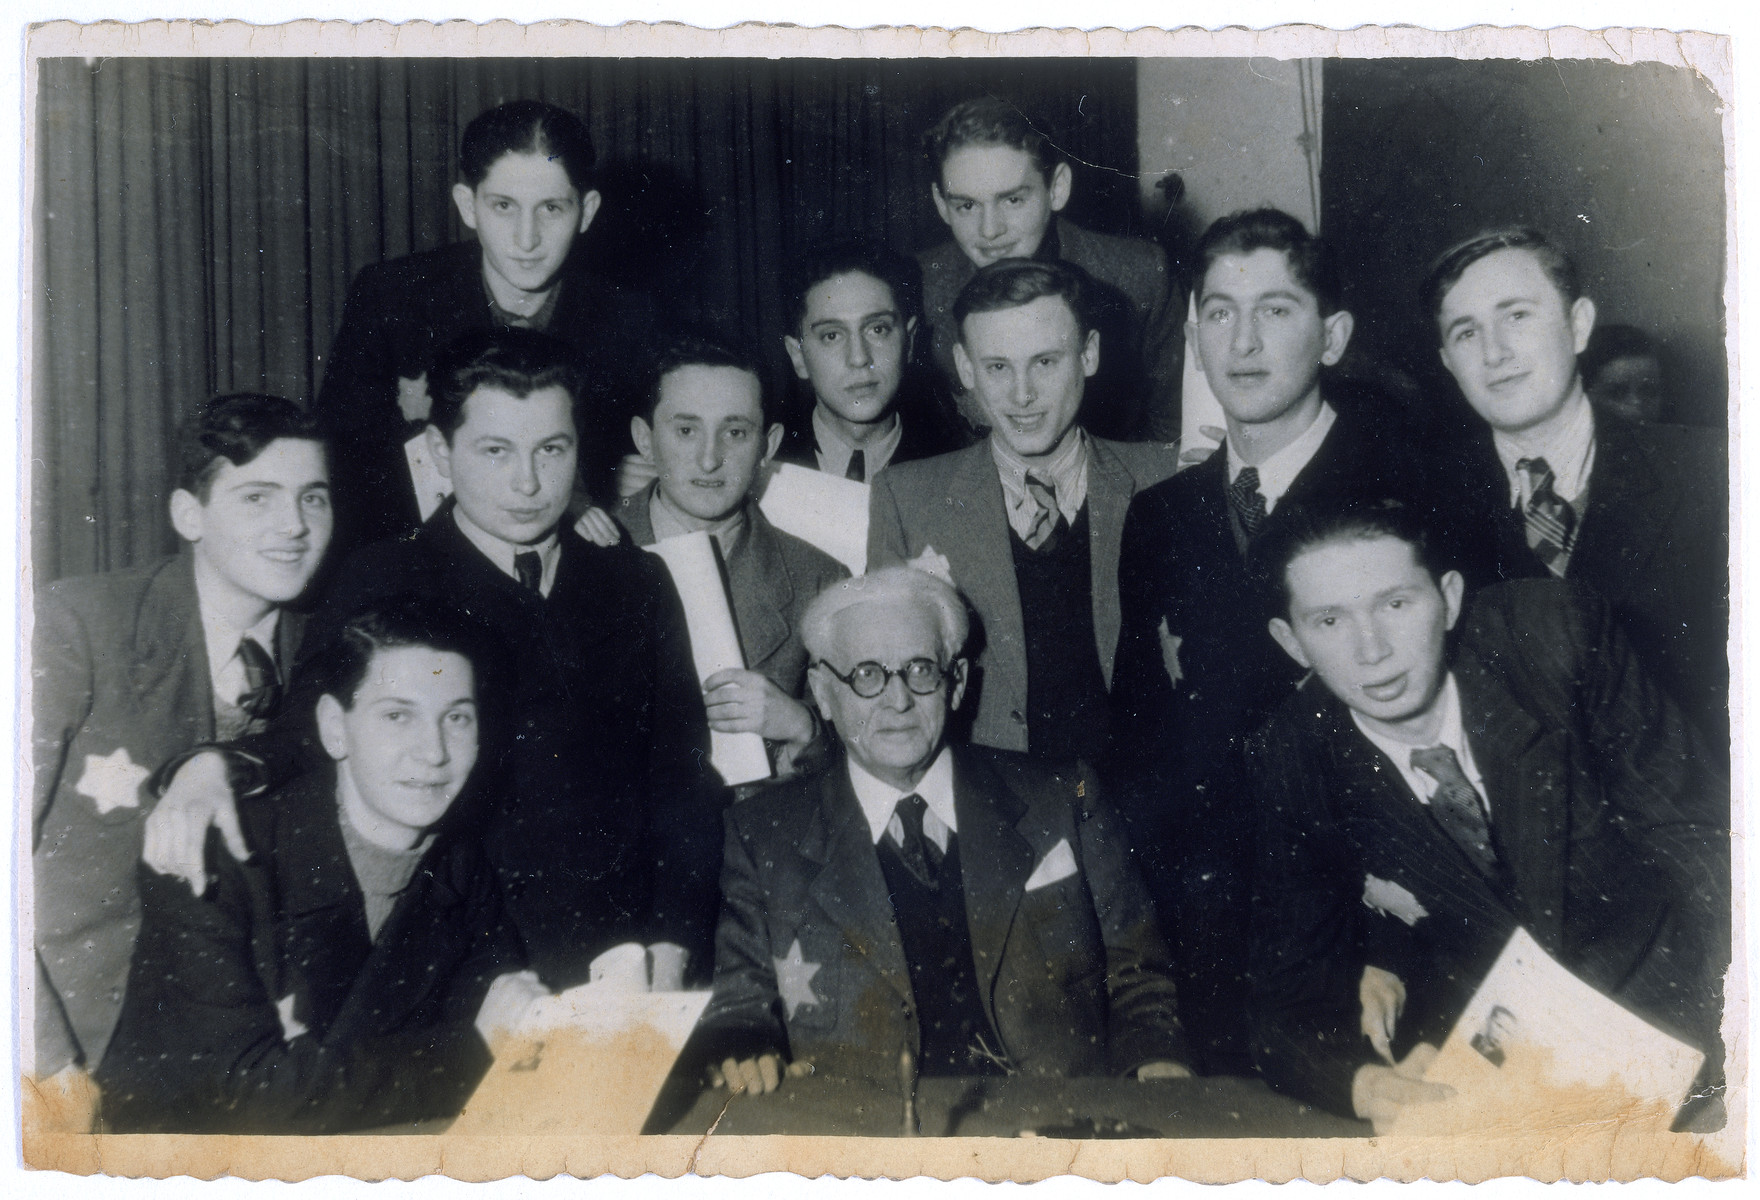 Teenagers, holding their diplomas, pose together with Mordechai Chaim Rumkowski (seated in the middle front) during their high school graduation excercise.   Itzak Rozenwasser is standing in the back row on left.  Other students are Borzykowski, Szelubski, Lubka, Margolis, Kon, Turbowicz, Hirszbein and Szwajcer.